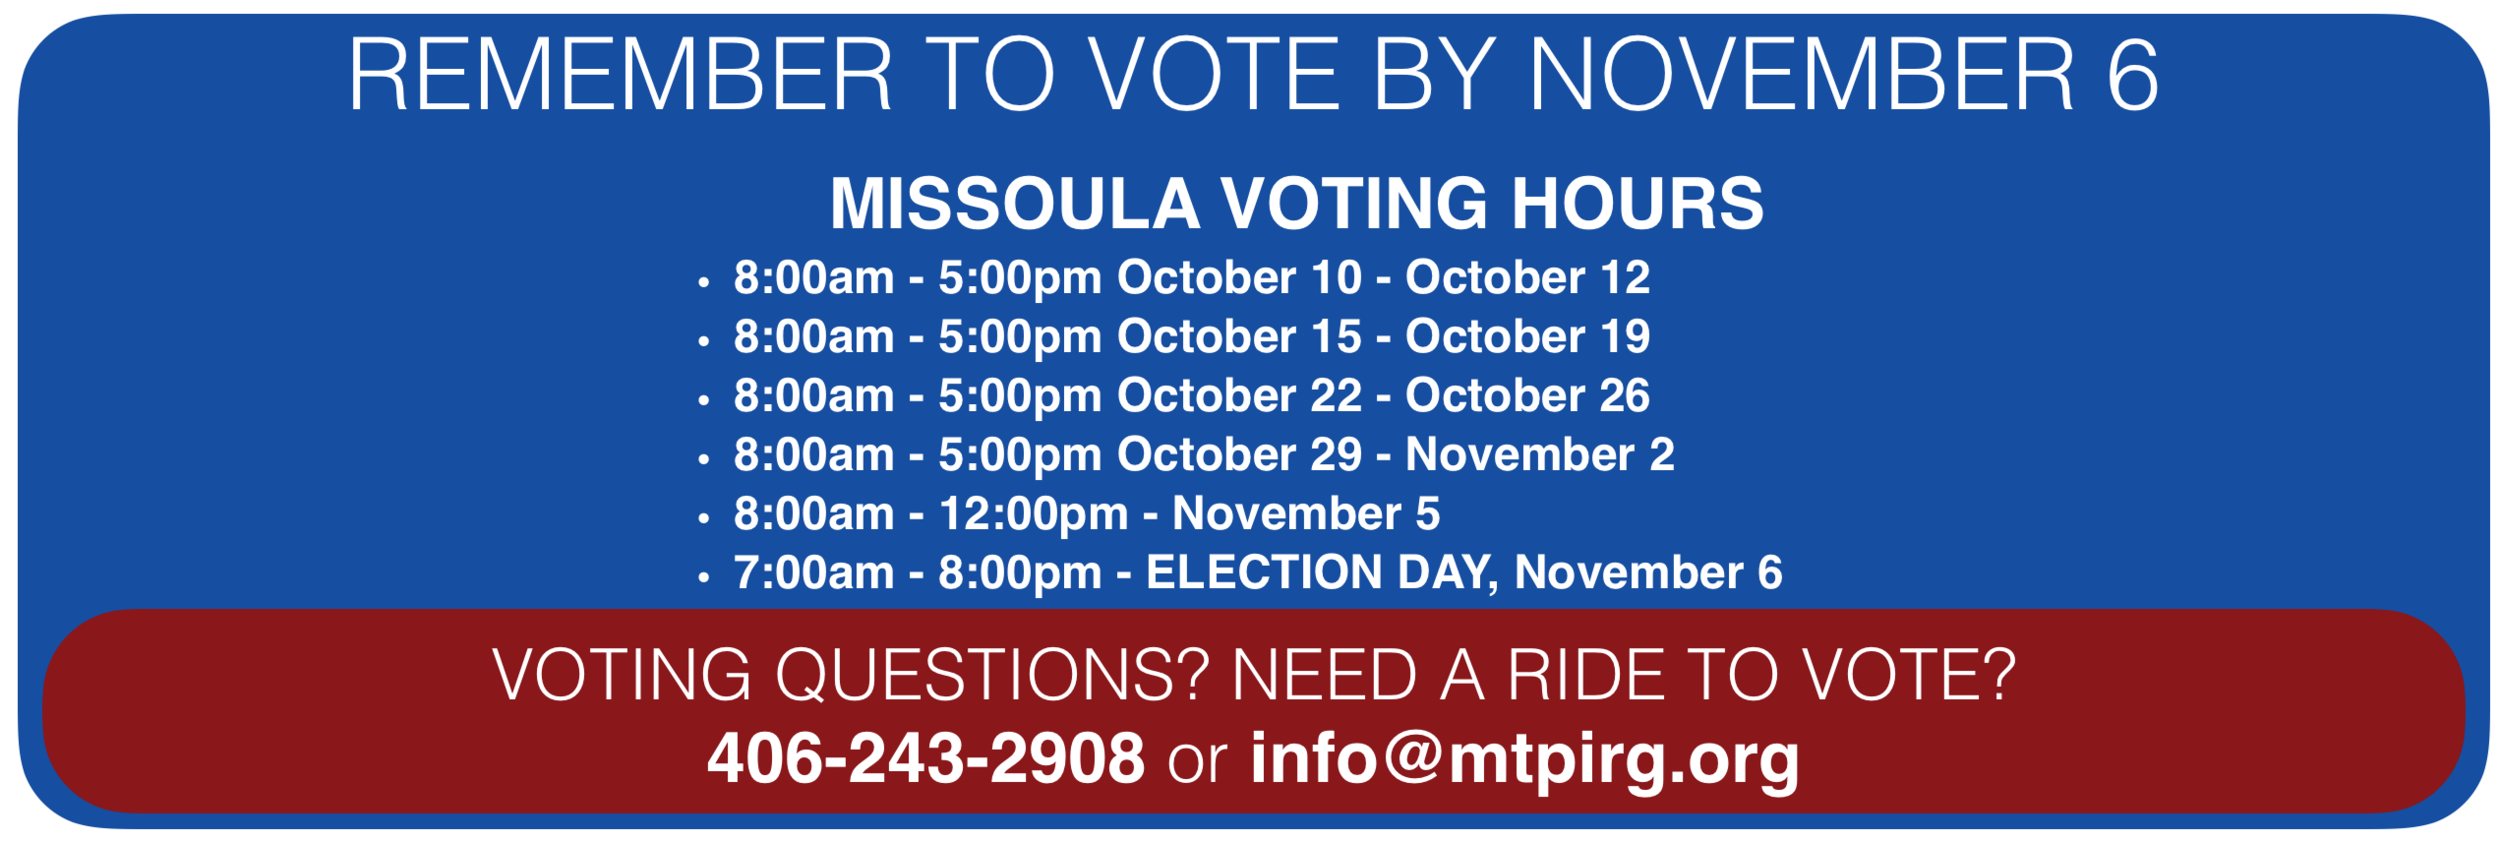 An image of the MISSOULA COUNTY VOTING HOURS, which are 8:00am - 5:00pm from October 10 to October 12,  8:00am to 5:00pm from October 15 to October 19, 8:00am to 5:00pm from October 22 to October 26, 8:00am to 5:00pm from October 29 to November 2, 8:00am to 12:00pm on November 5, and 7:00am to 8:00pm on ELECTION DAY November 6